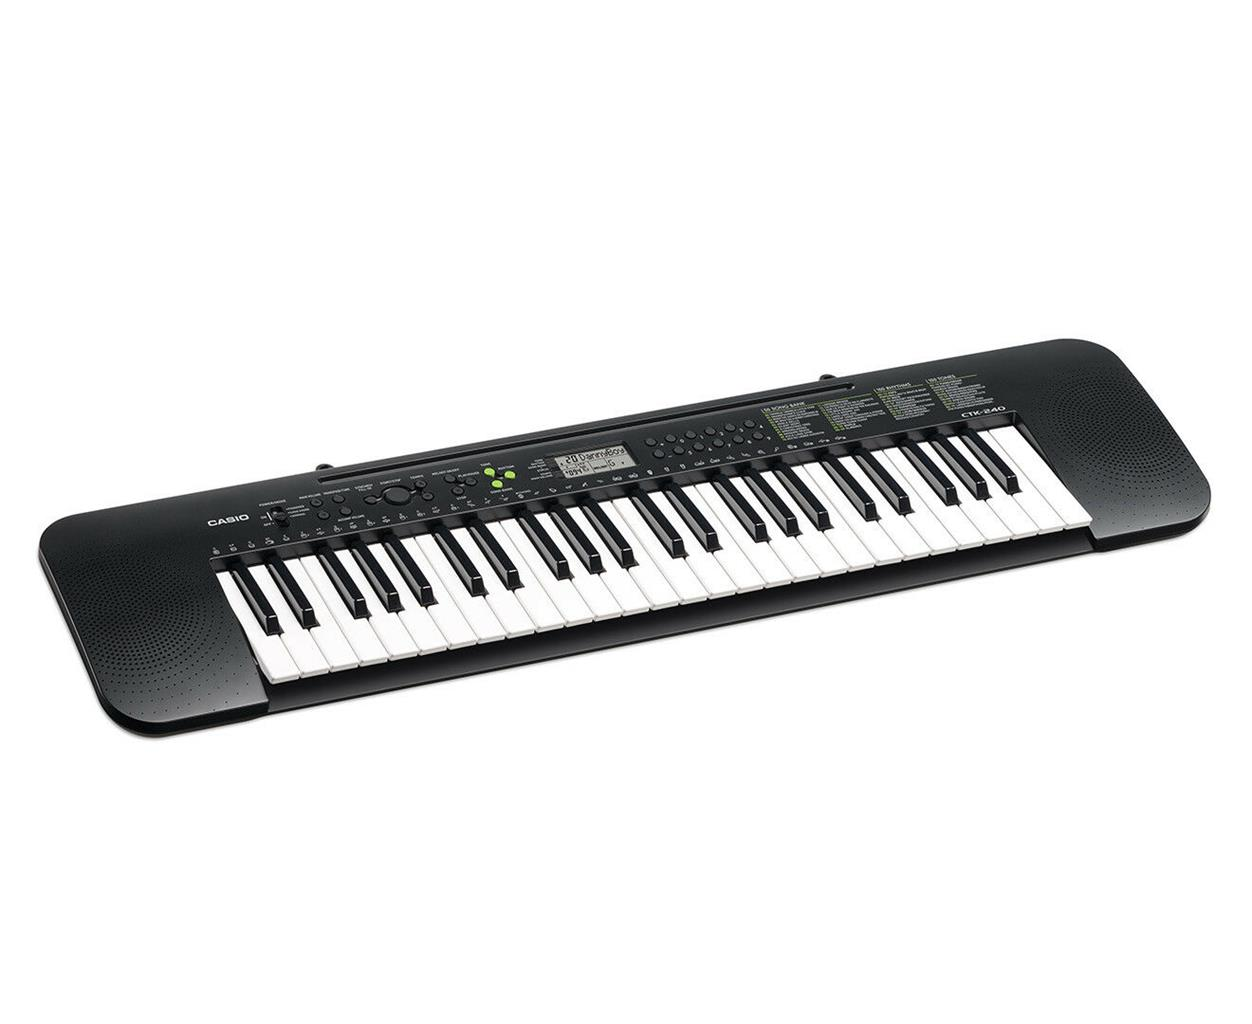 CASIO-CTK-240-H7-sku-6111